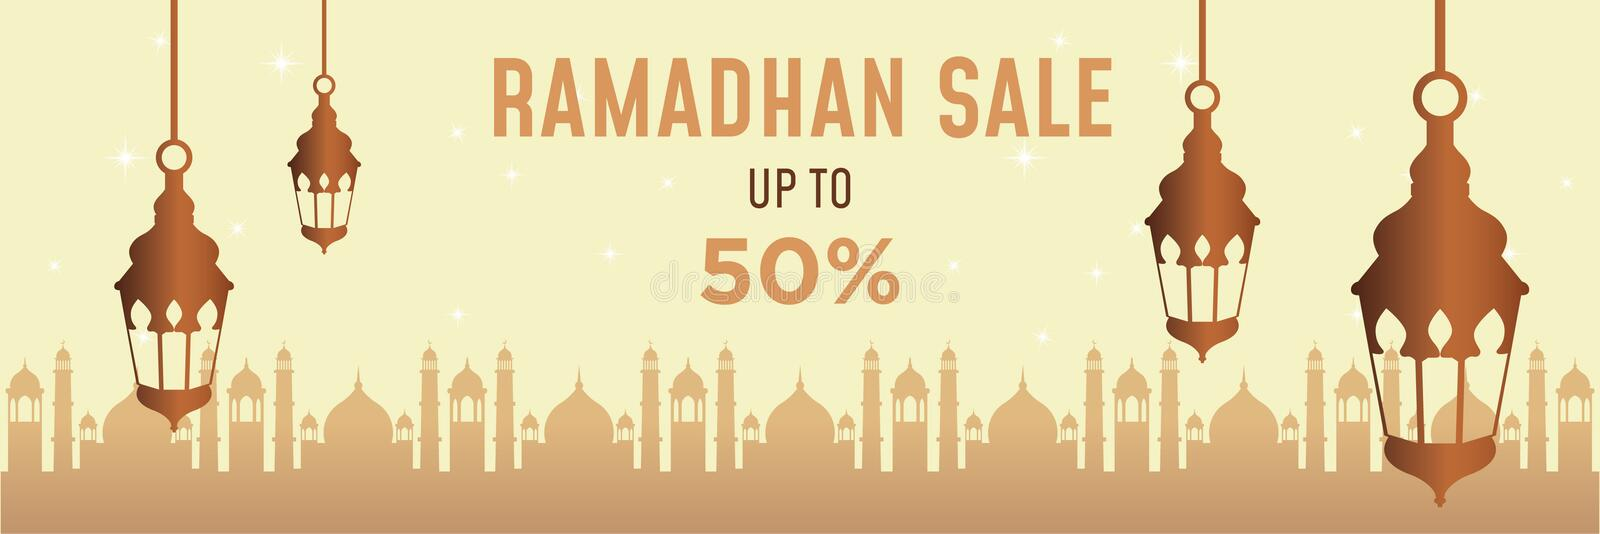 Ramadan header banner vector illustration